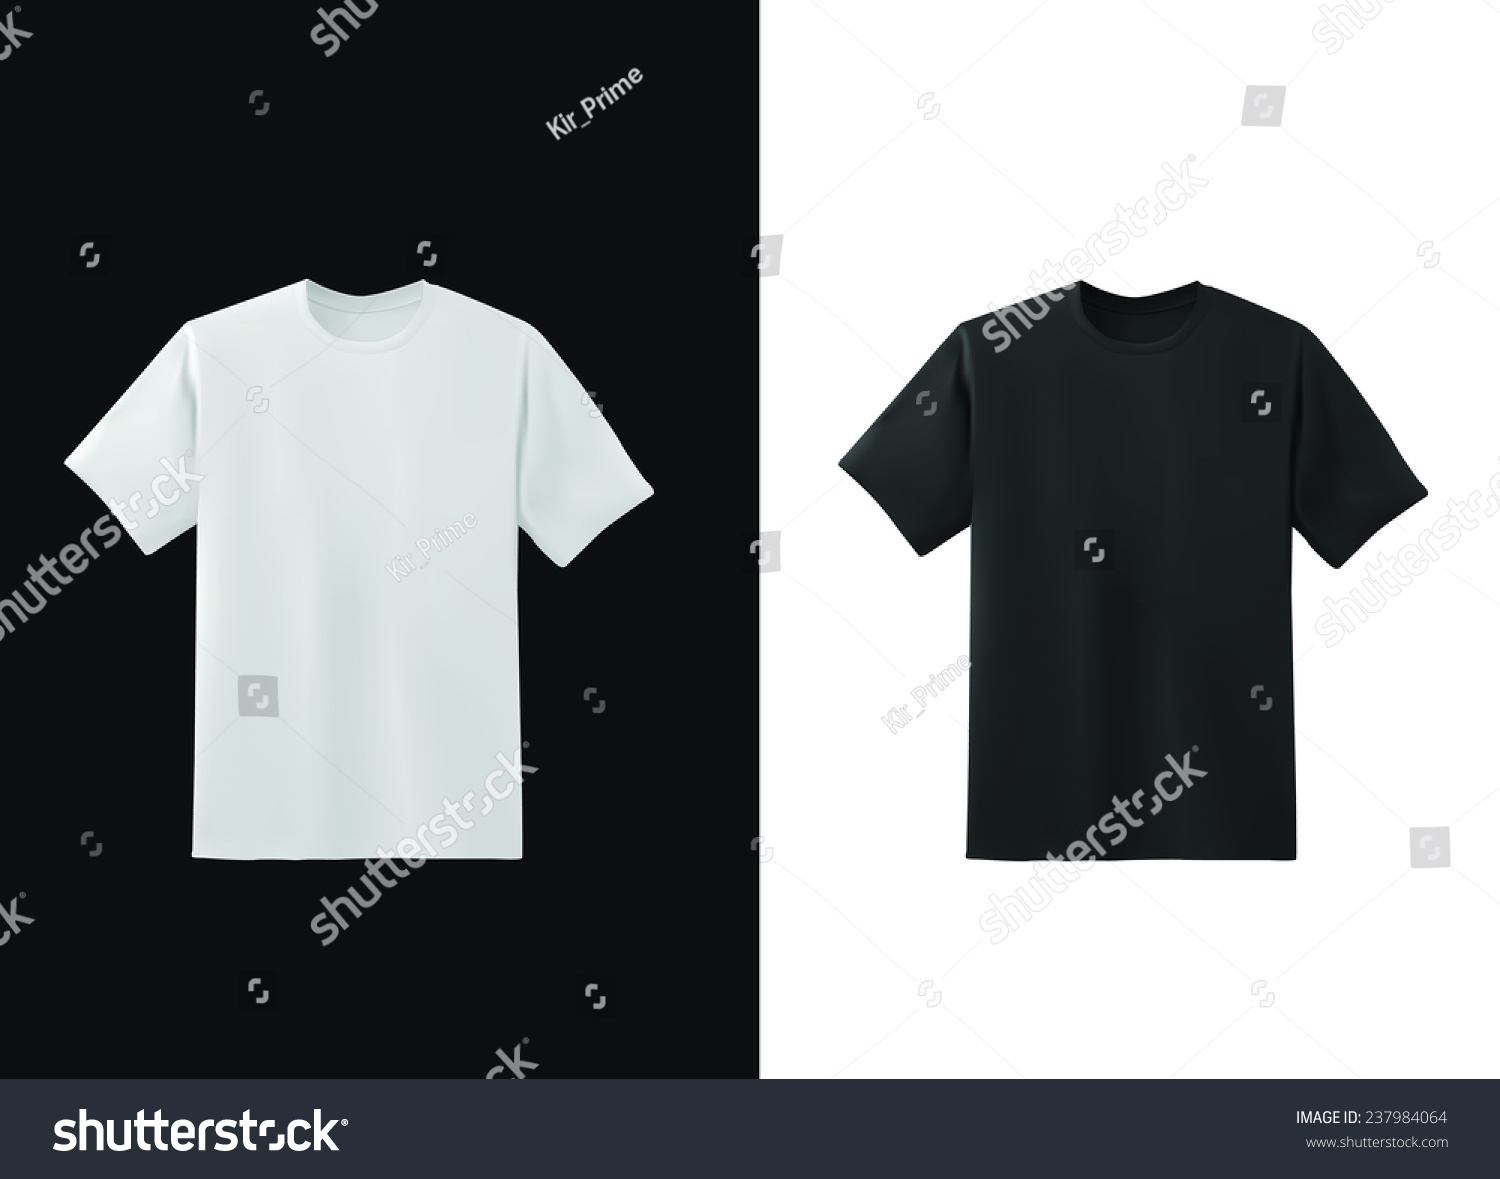 Black t shirt vector - White And Black T Shirt Template Collection Vector Eps10 Illustration